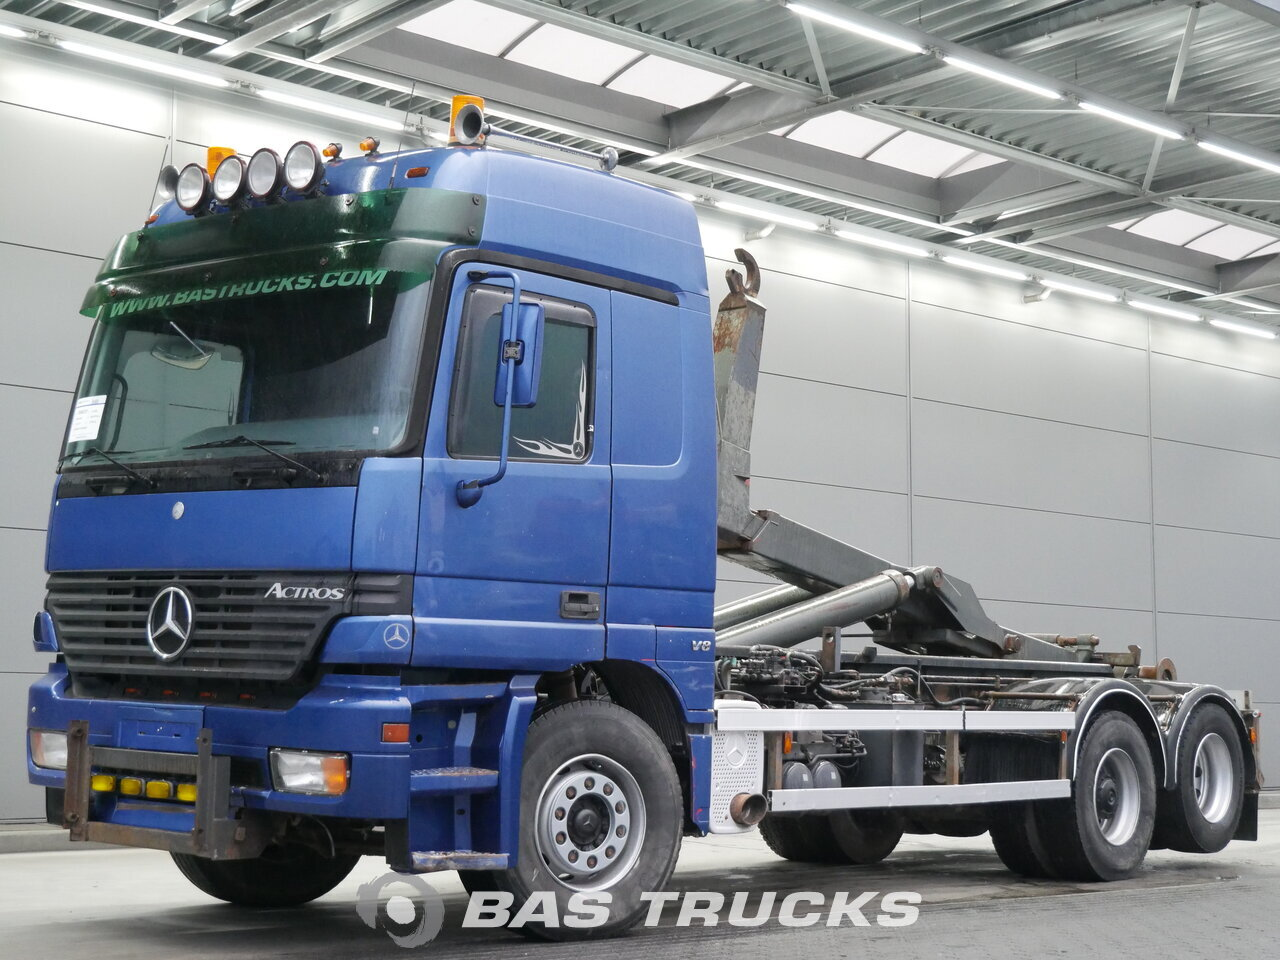 mercedes actros 2548 s getriebeschaden lkw euro 2 10800. Black Bedroom Furniture Sets. Home Design Ideas